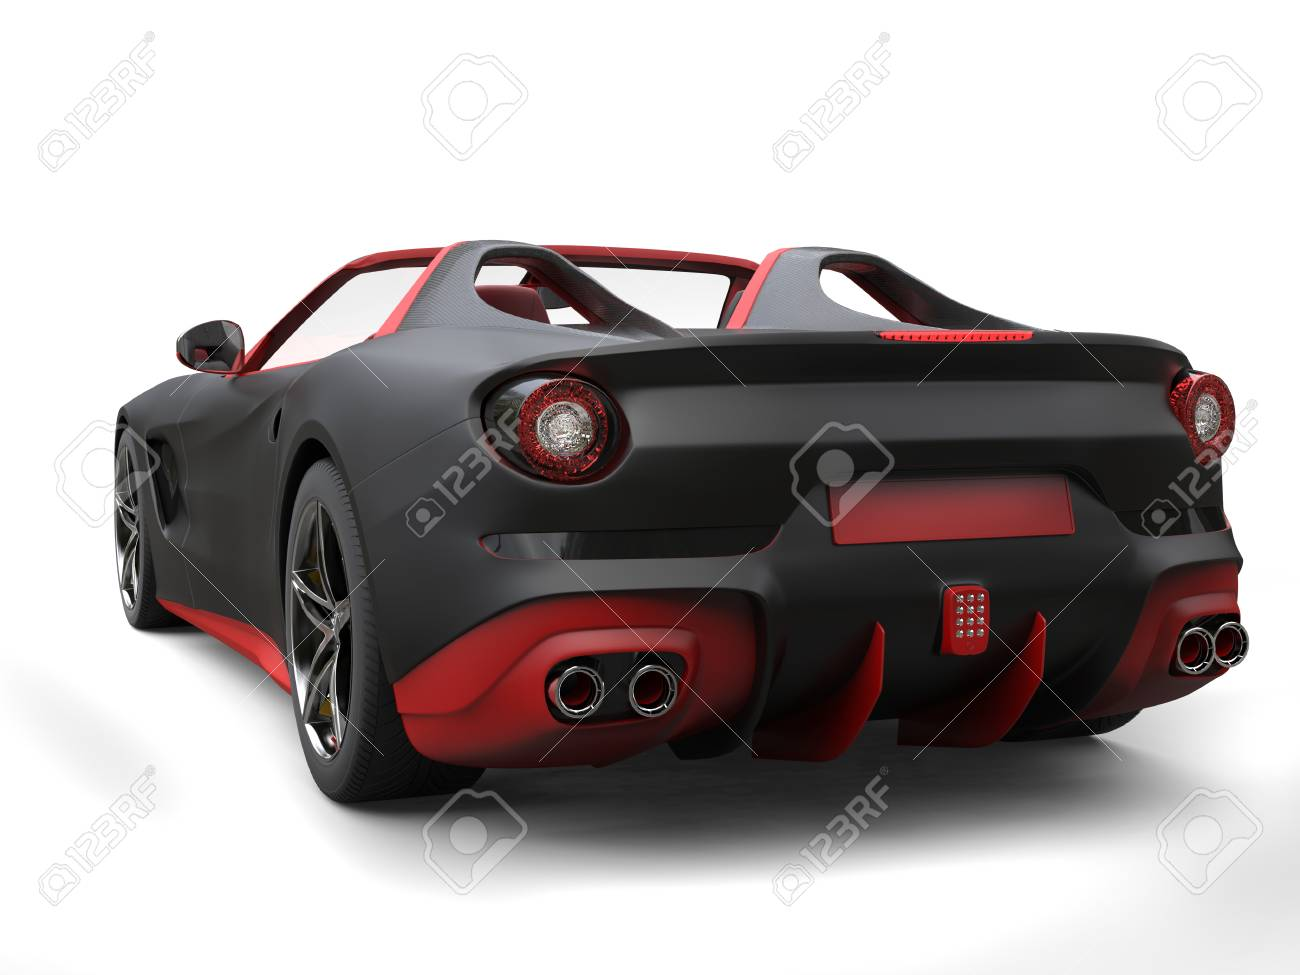 Cutting Edge Sports Car   Matte Black With Fiery Red Details   Back View  Stock Photo